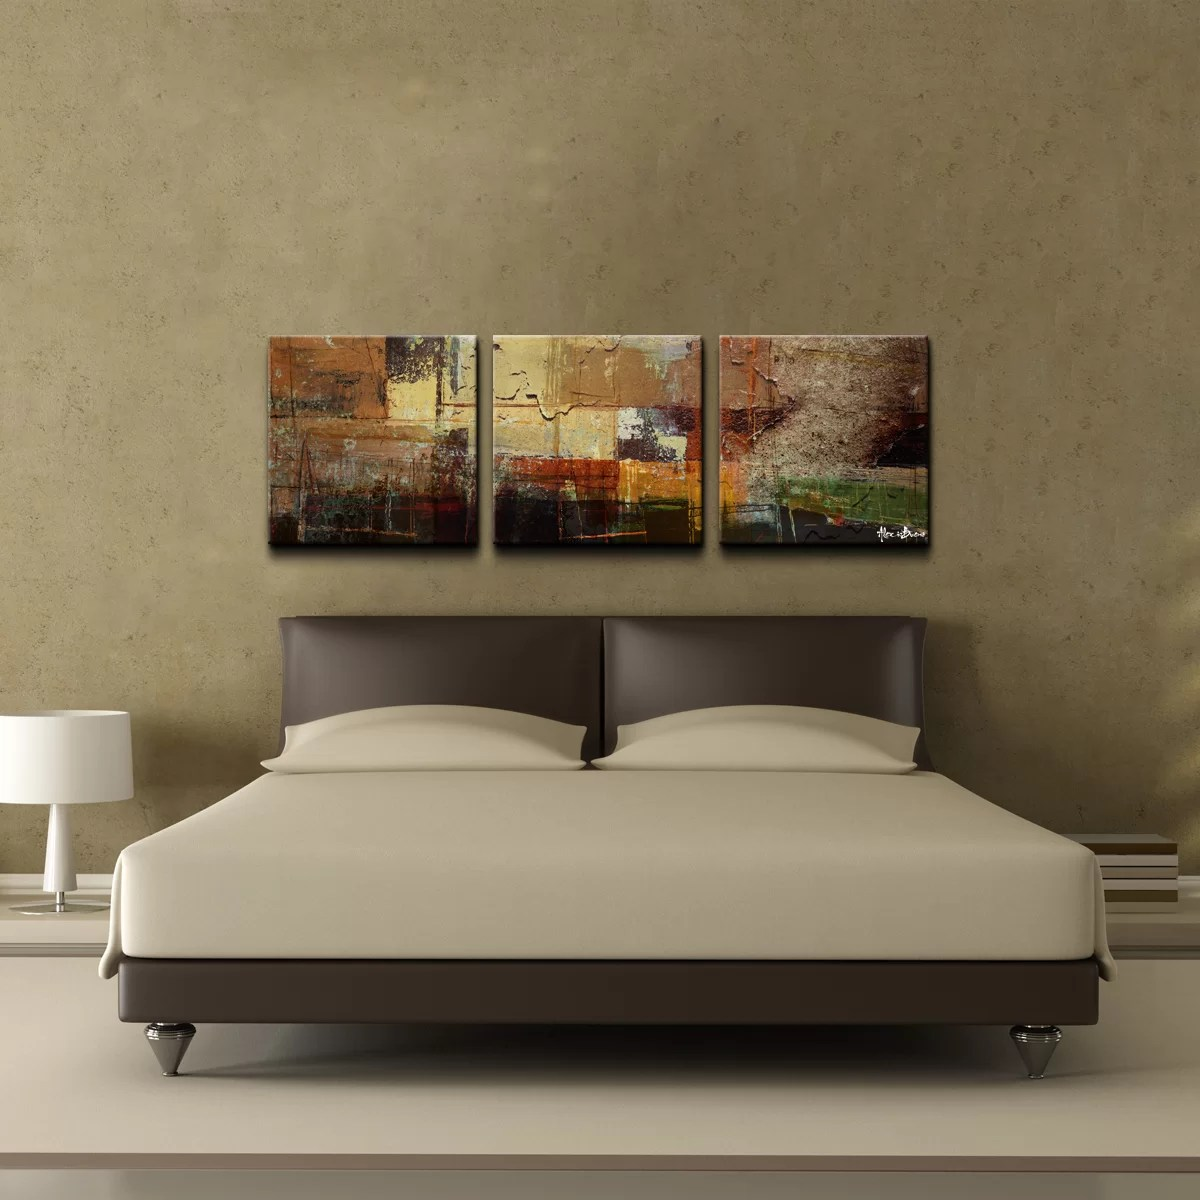 Oversized Modern Wall Art Ready2hangart Oversized Abstract 3 Piece Print Of Painting